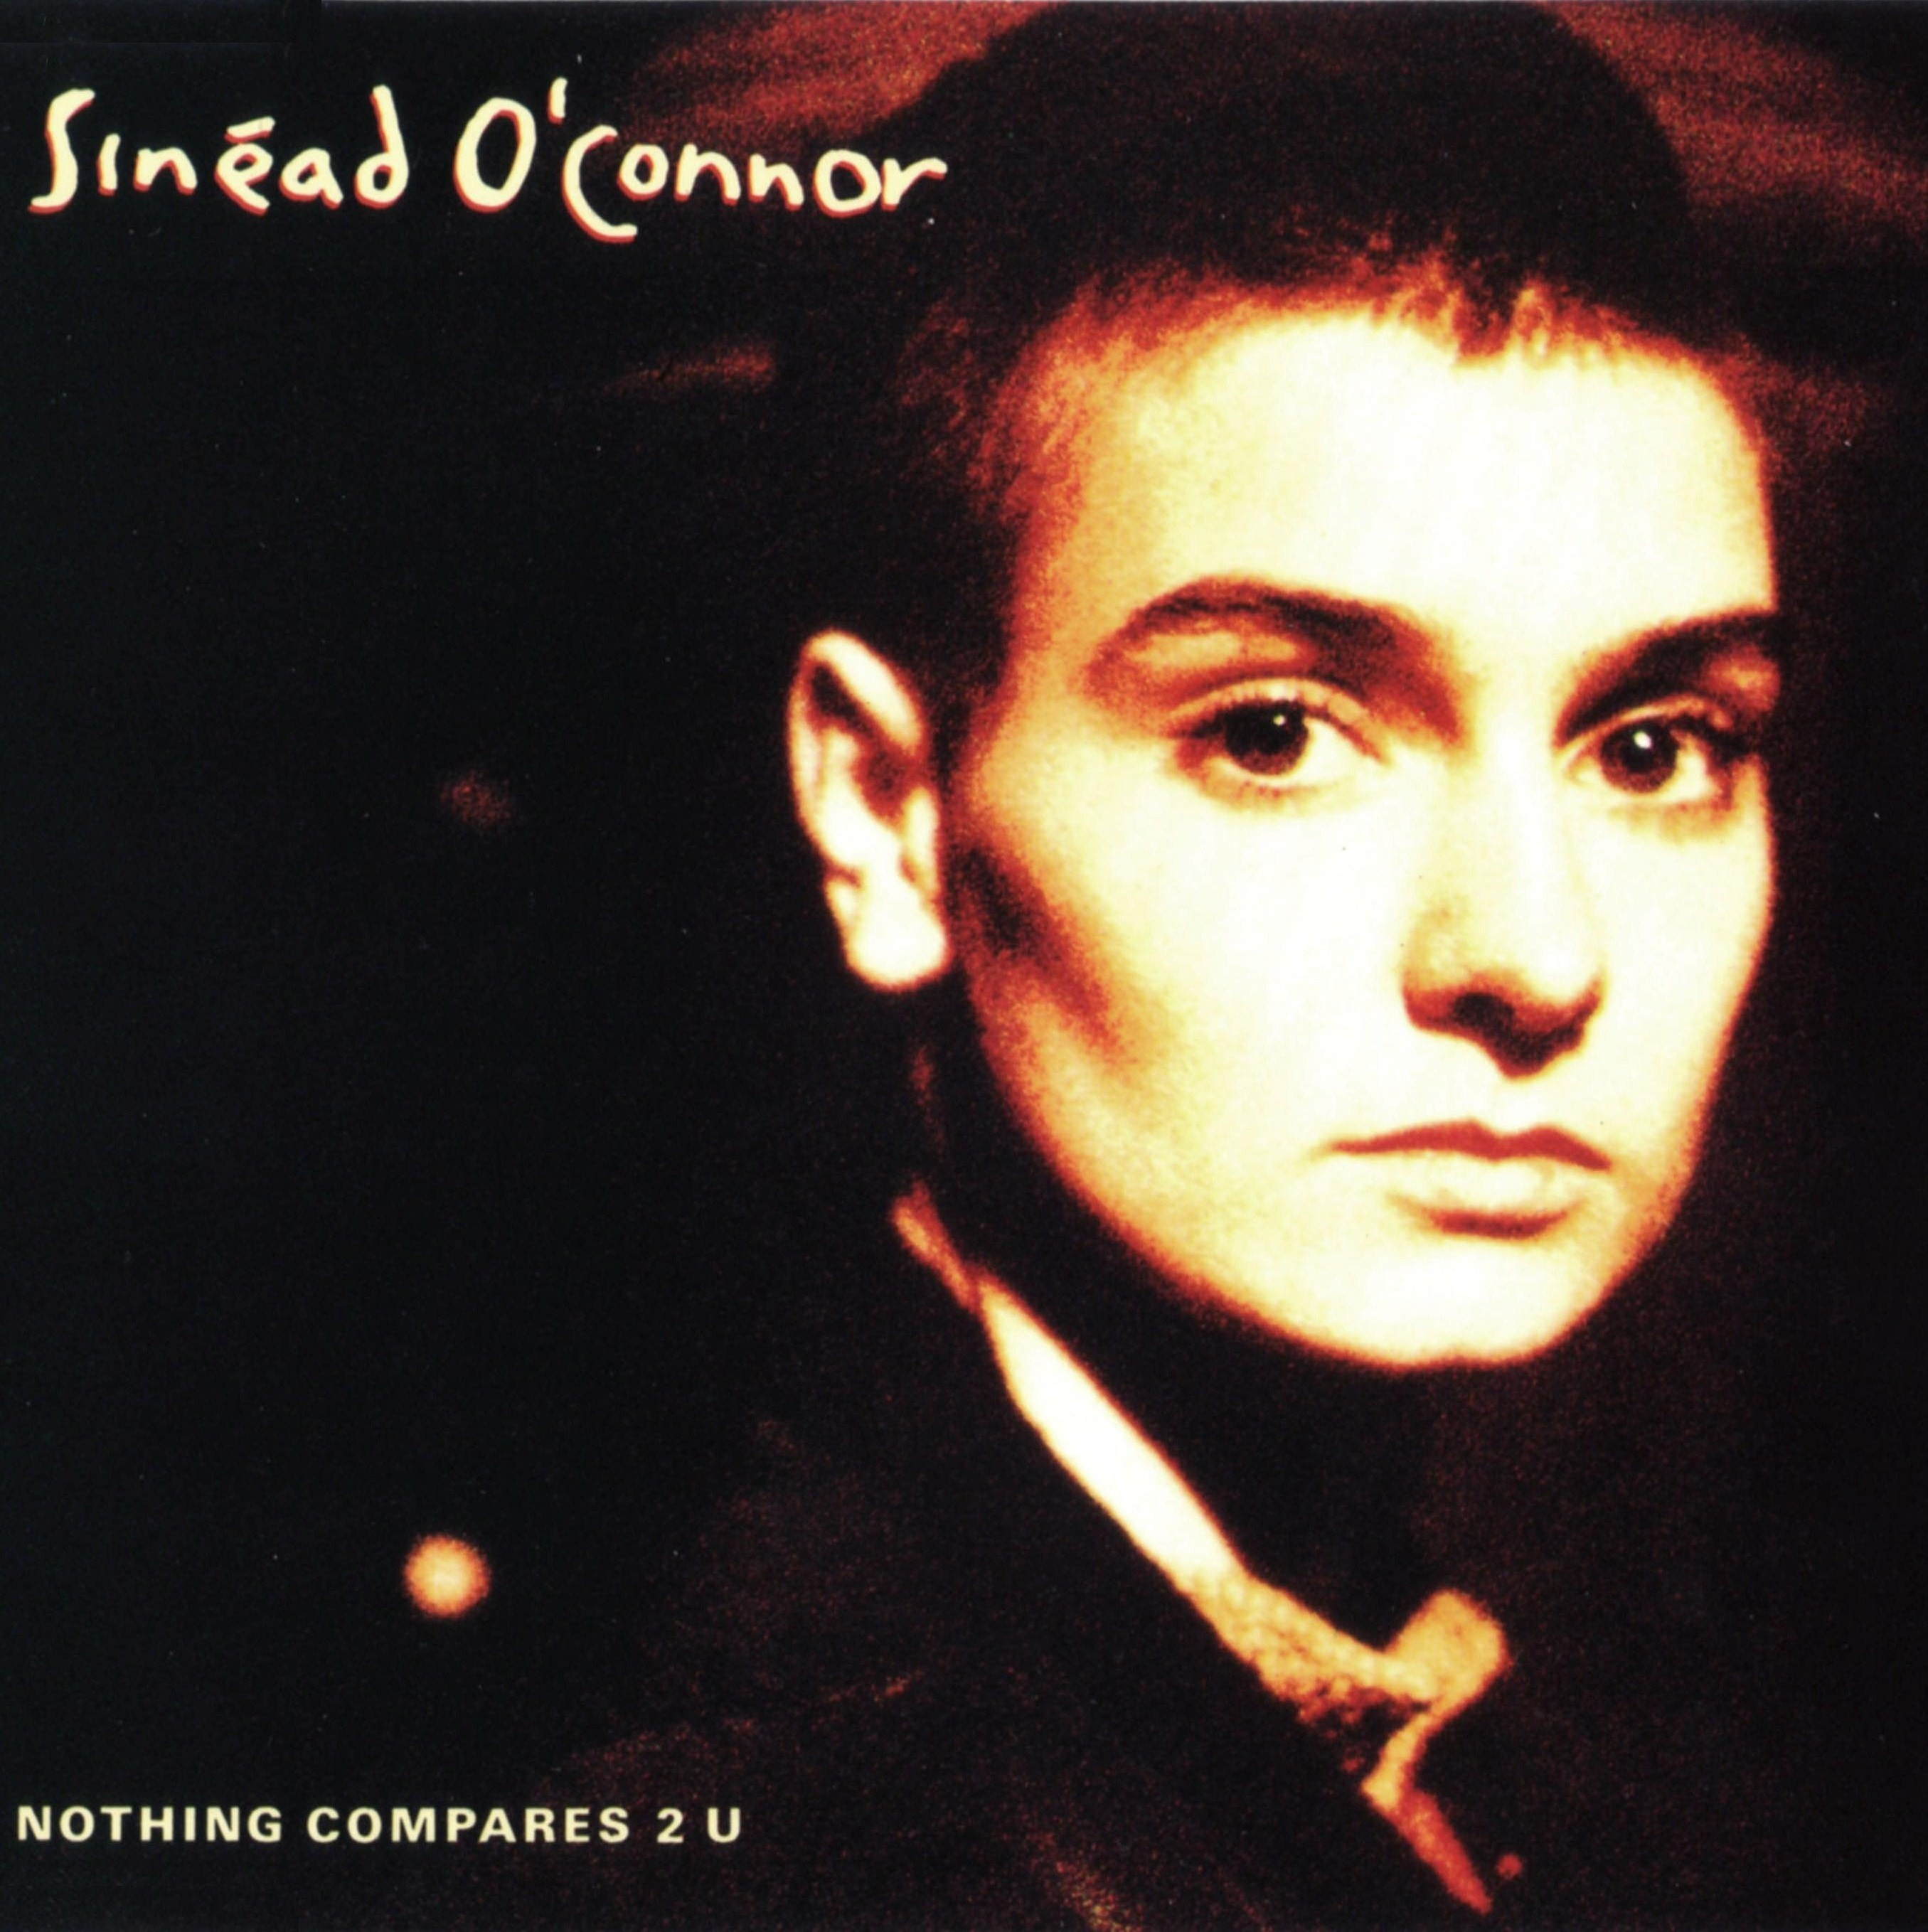 O' Connor, Sinead Nothing Compares 2 U